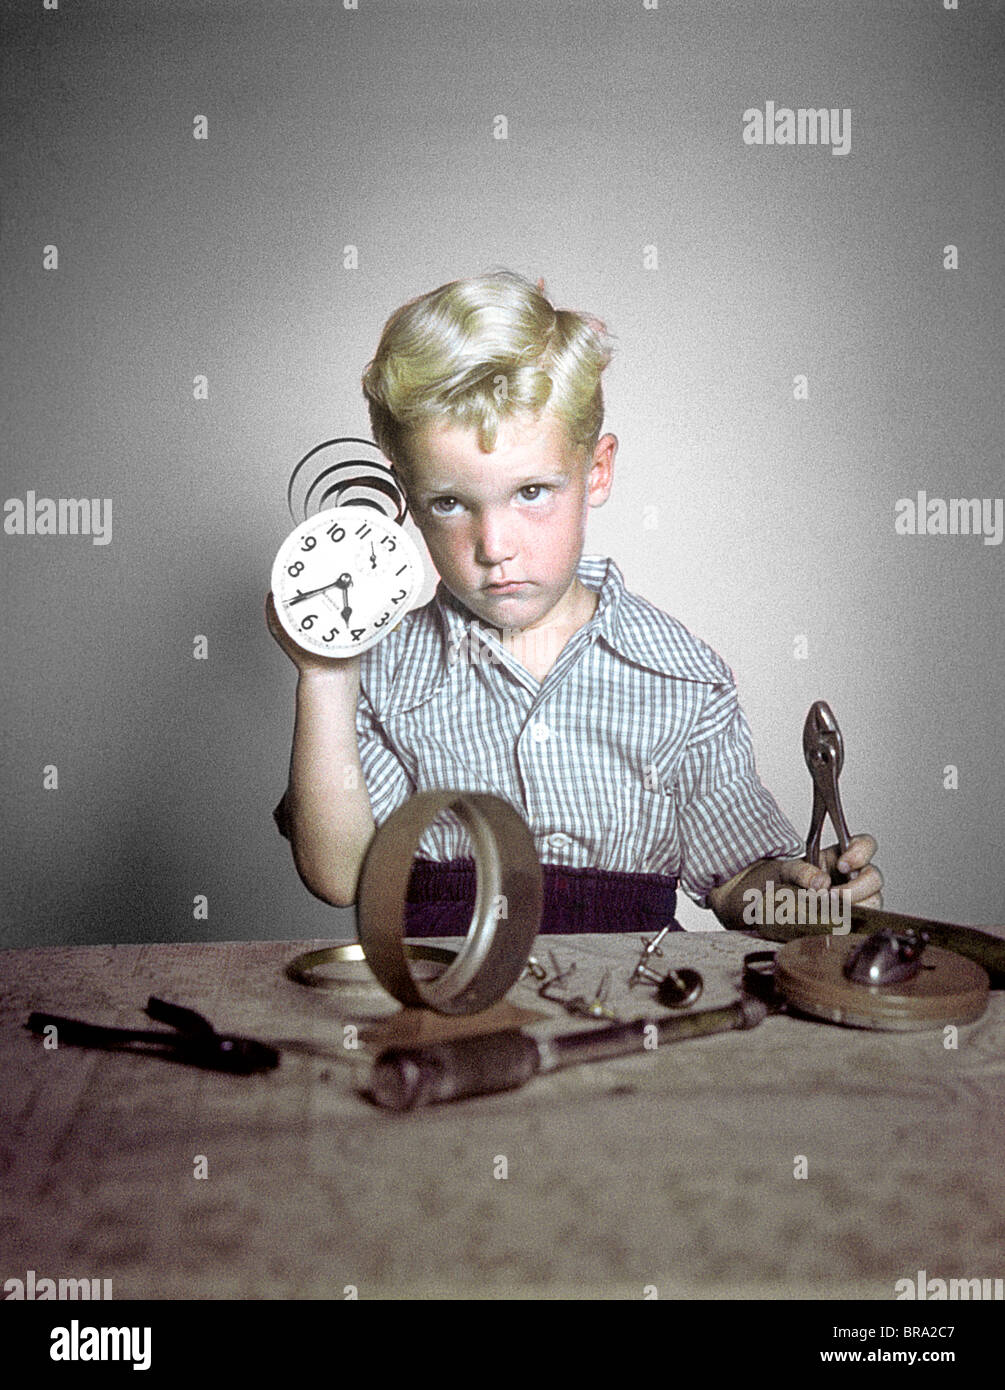 1940s 1950s FUNNY BOY CONFUSED TAKING APART CLOCK TOOLS - Stock Image